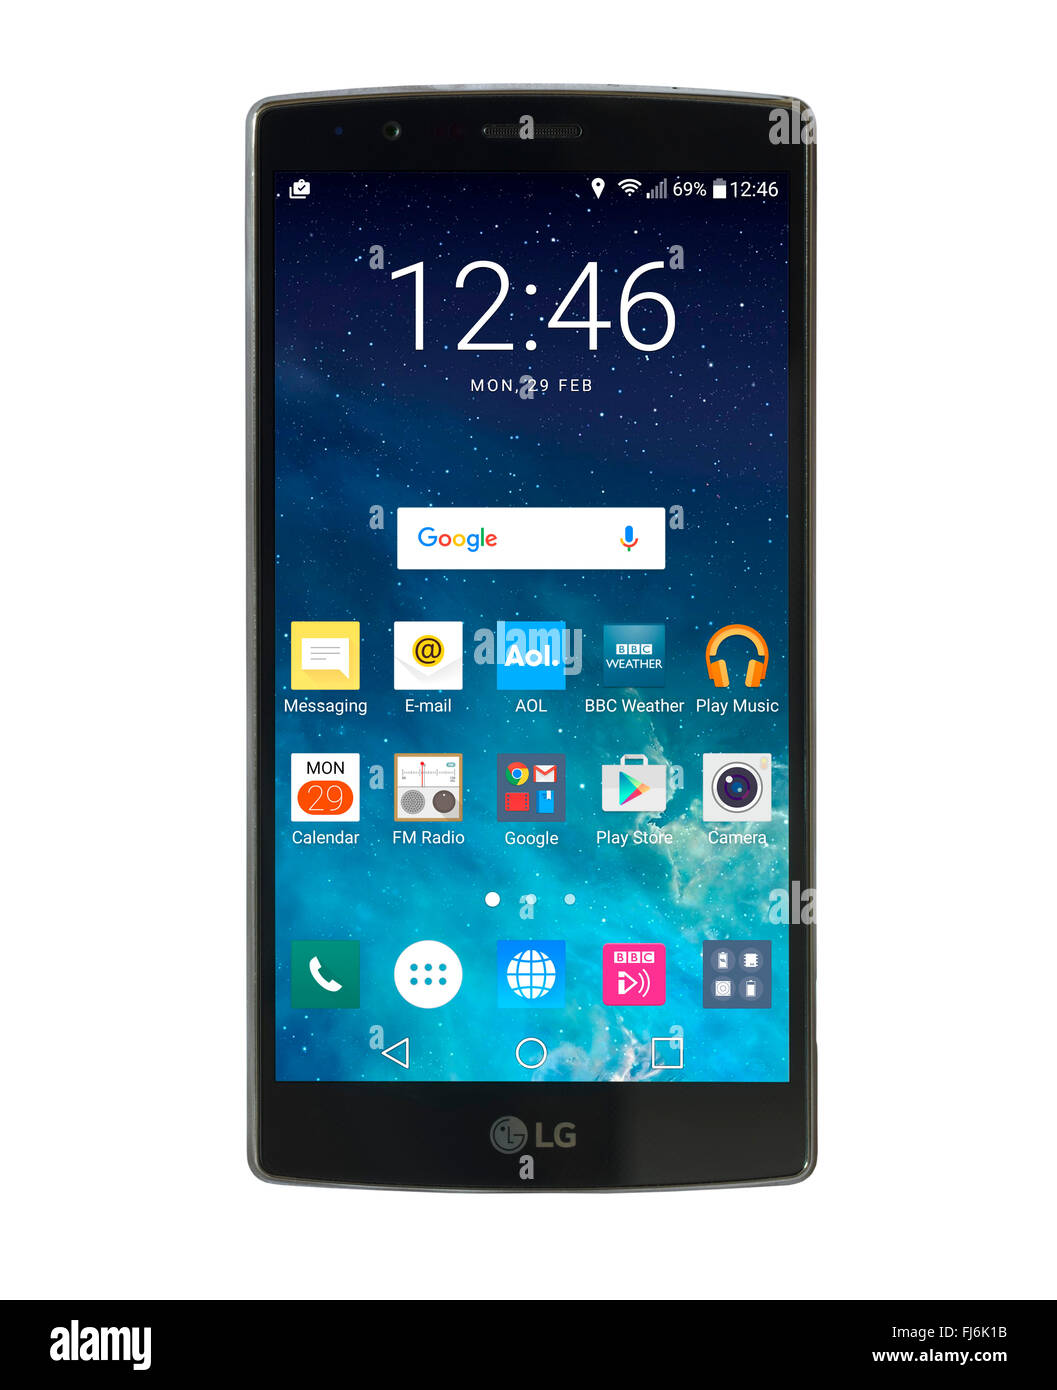 Home screen on an LG G4 5.5 inch Android smartphone  running Android 6 Marshmallow - Stock Image